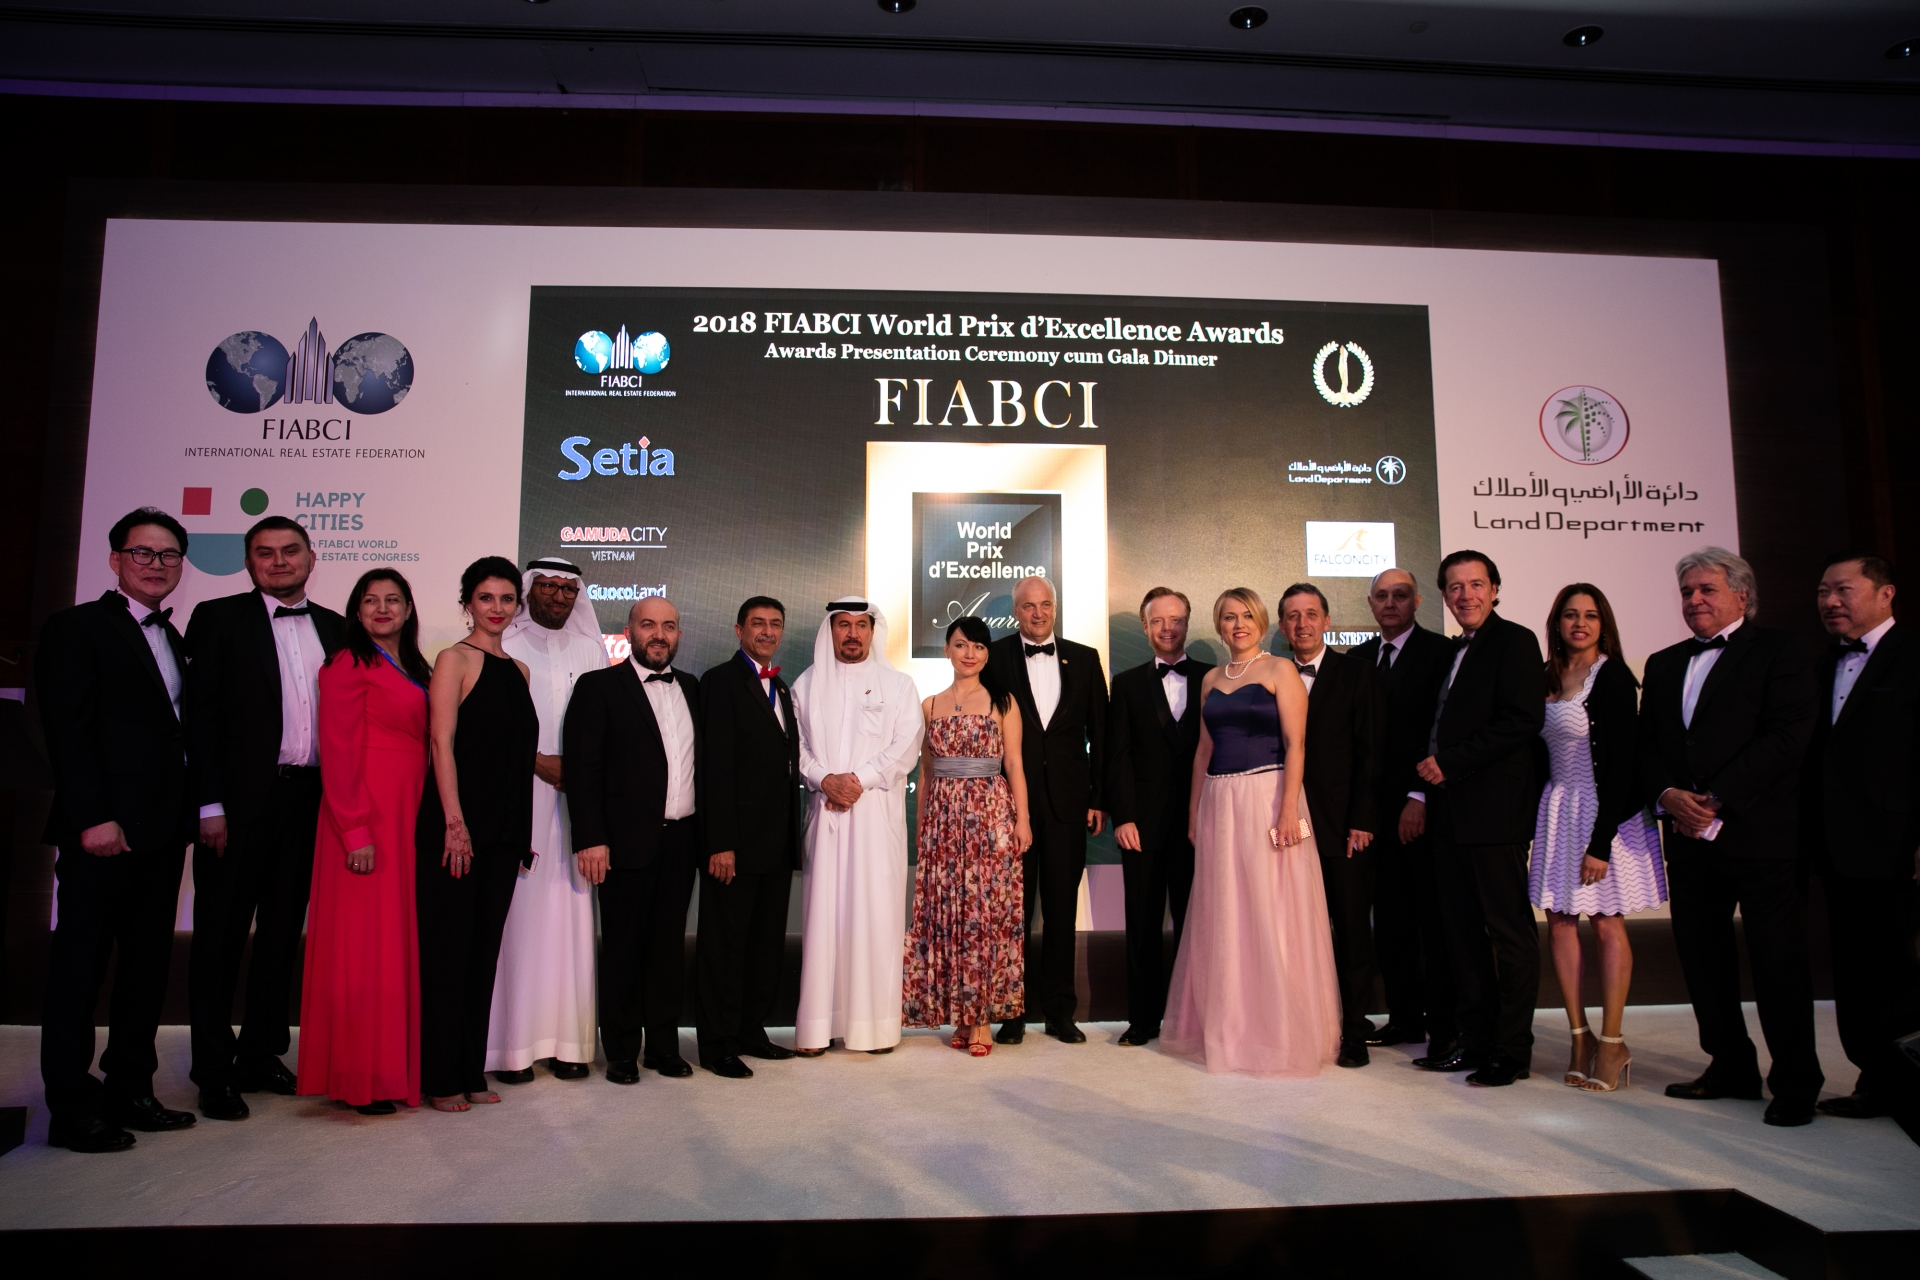 27th FIABCI World Prix d'Excellence Awards